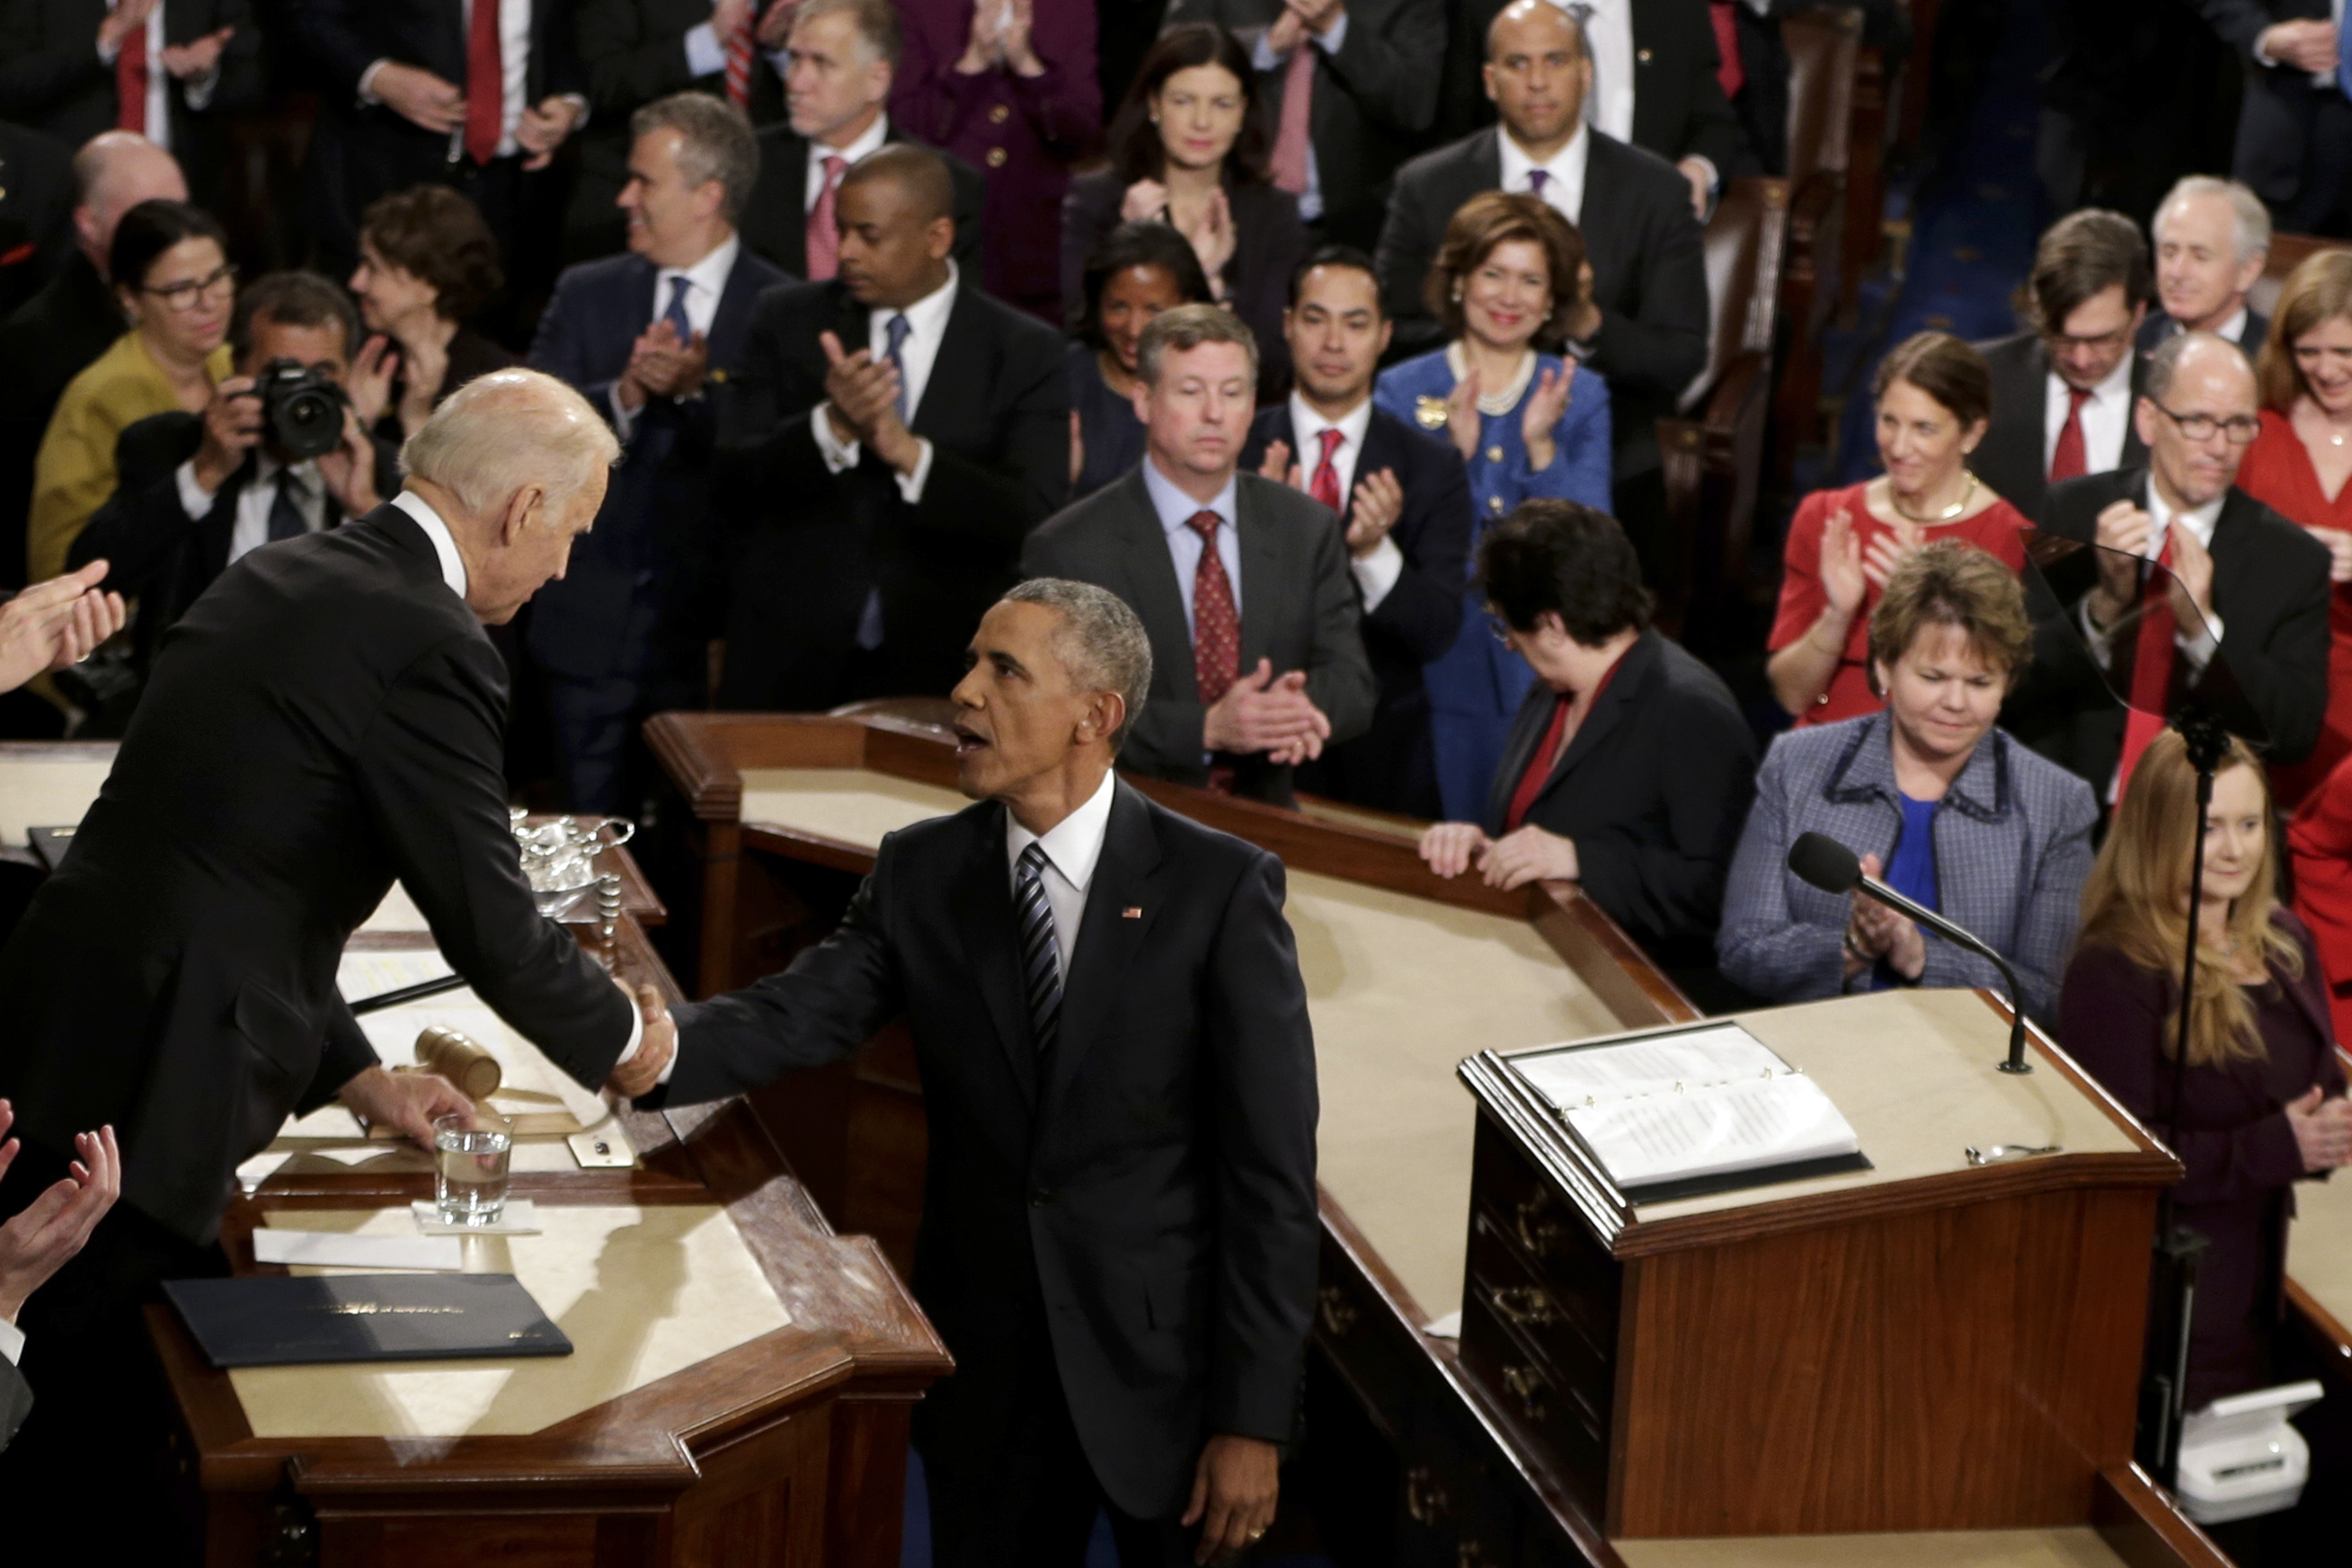 """obama state of union address The always outspoken rep steve stockman (r-texas) walked out midway through president obama's state of the union address on tuesday, the dallas morning news reported """"tonight i left early after hearing how the president is further abusing his constitutional powers,"""" stockman told the dallas."""